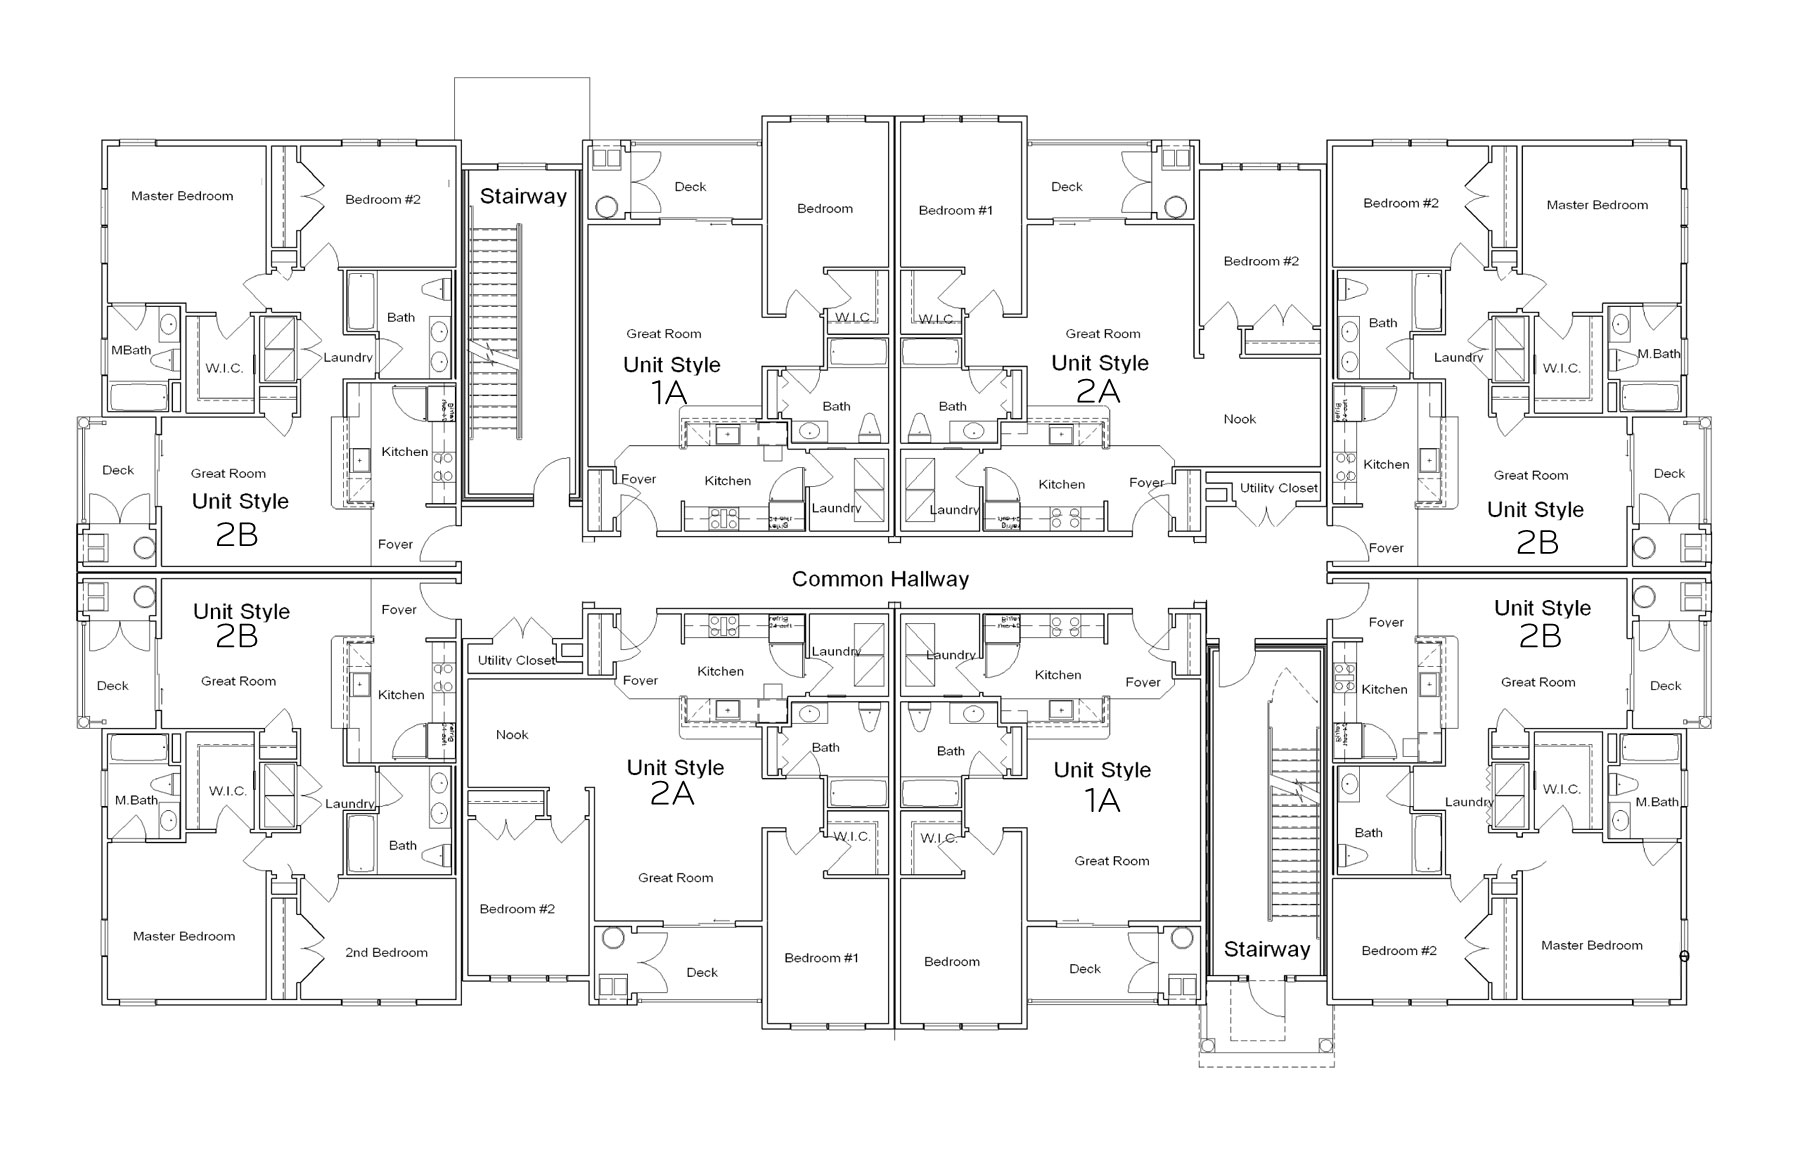 floor plan layout click to enlarge